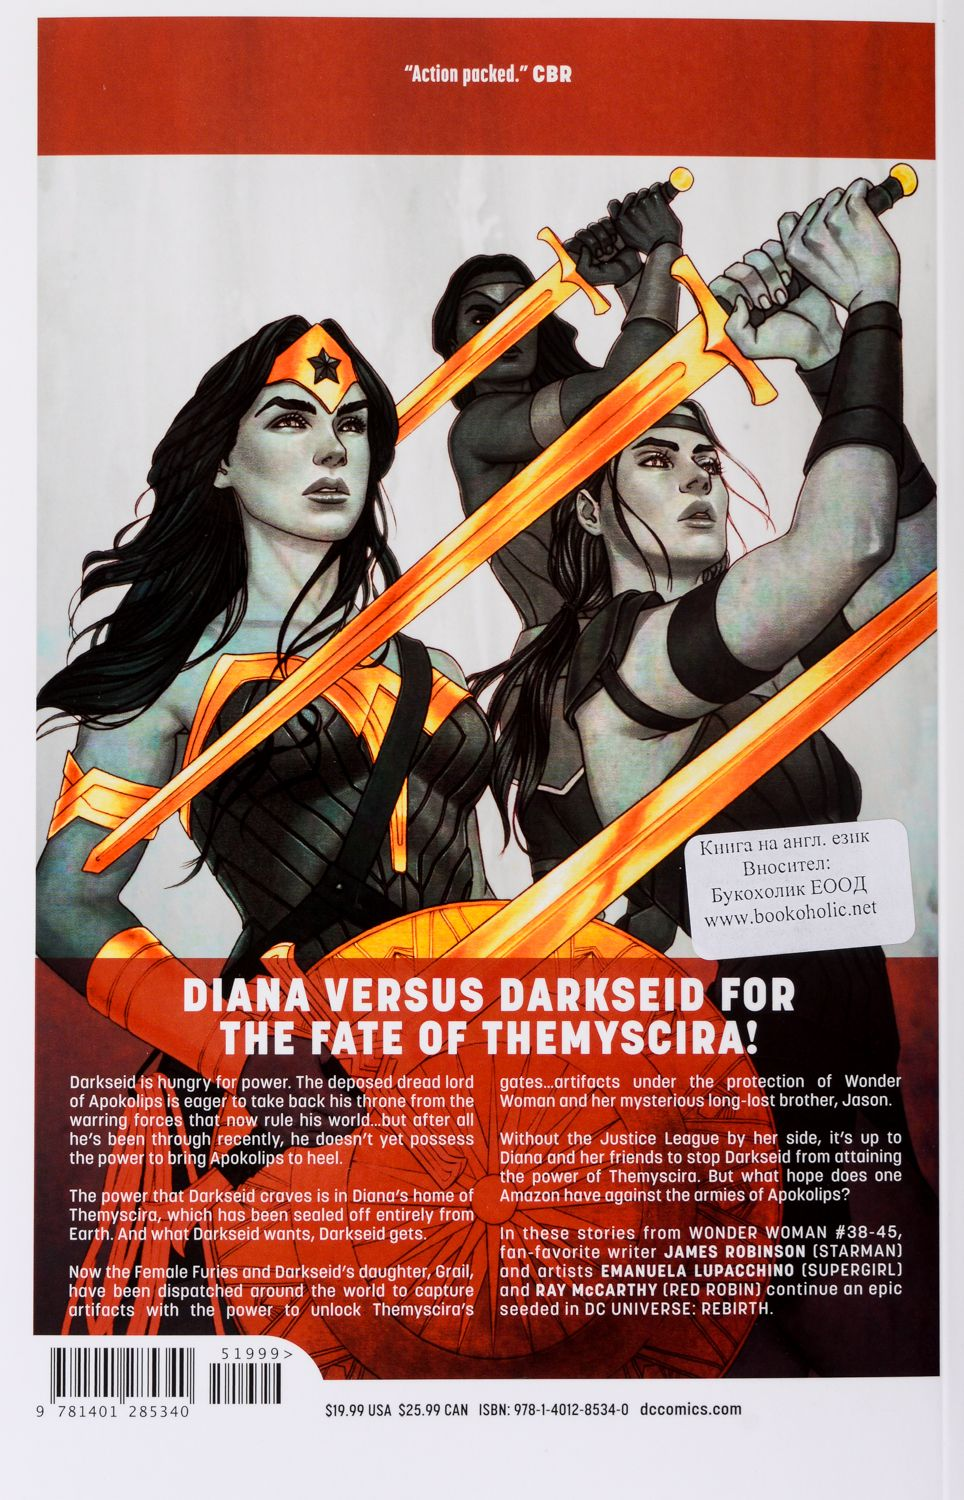 Wonder Woman Vol. 7: Amazons Attacked-1 - 3